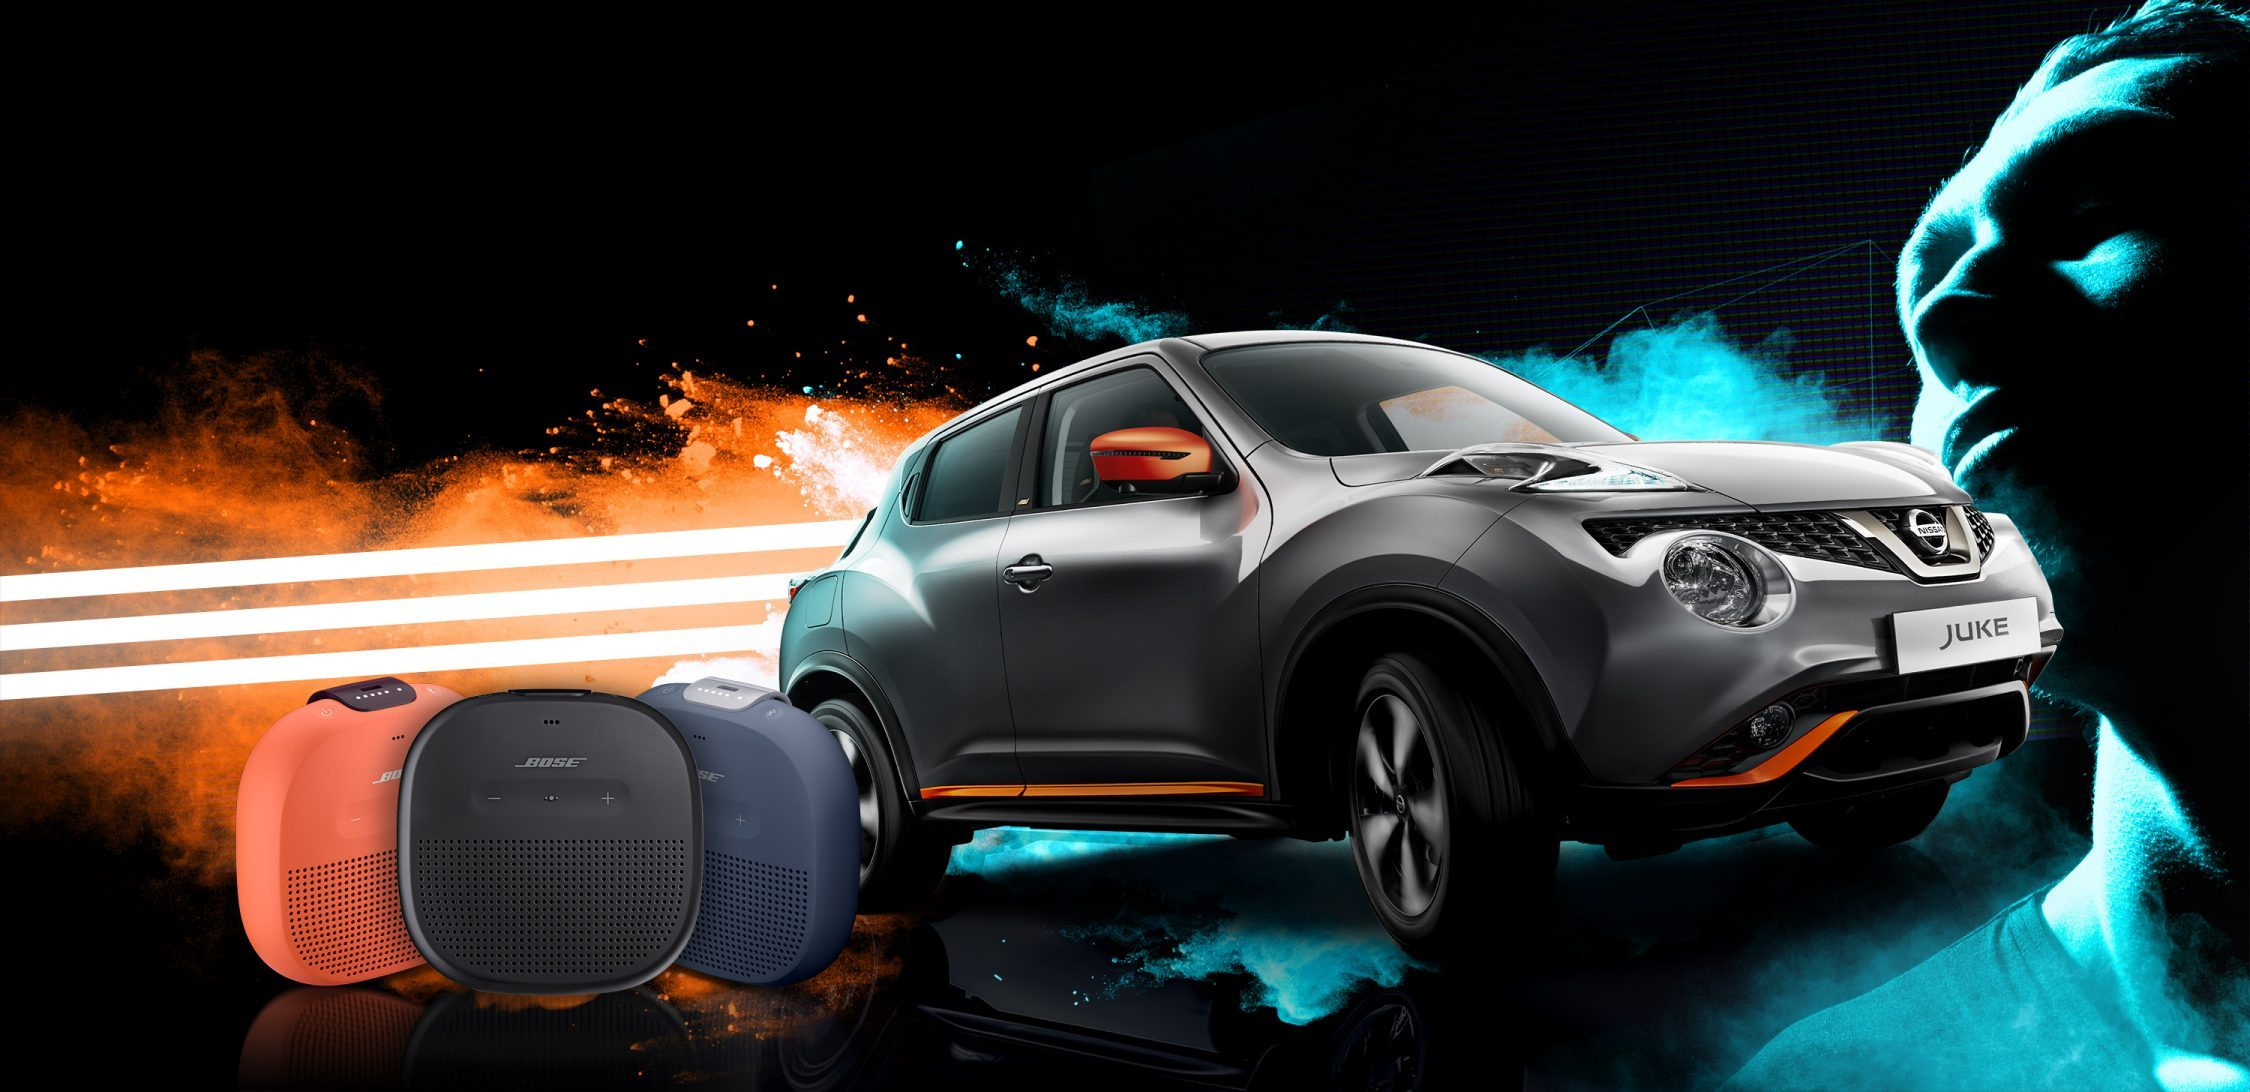 Grey Nissan JUKE with orange accents on the right, with the Orange, Blue and Black colour options of the BOSE Portable Speaker on the bottom left.